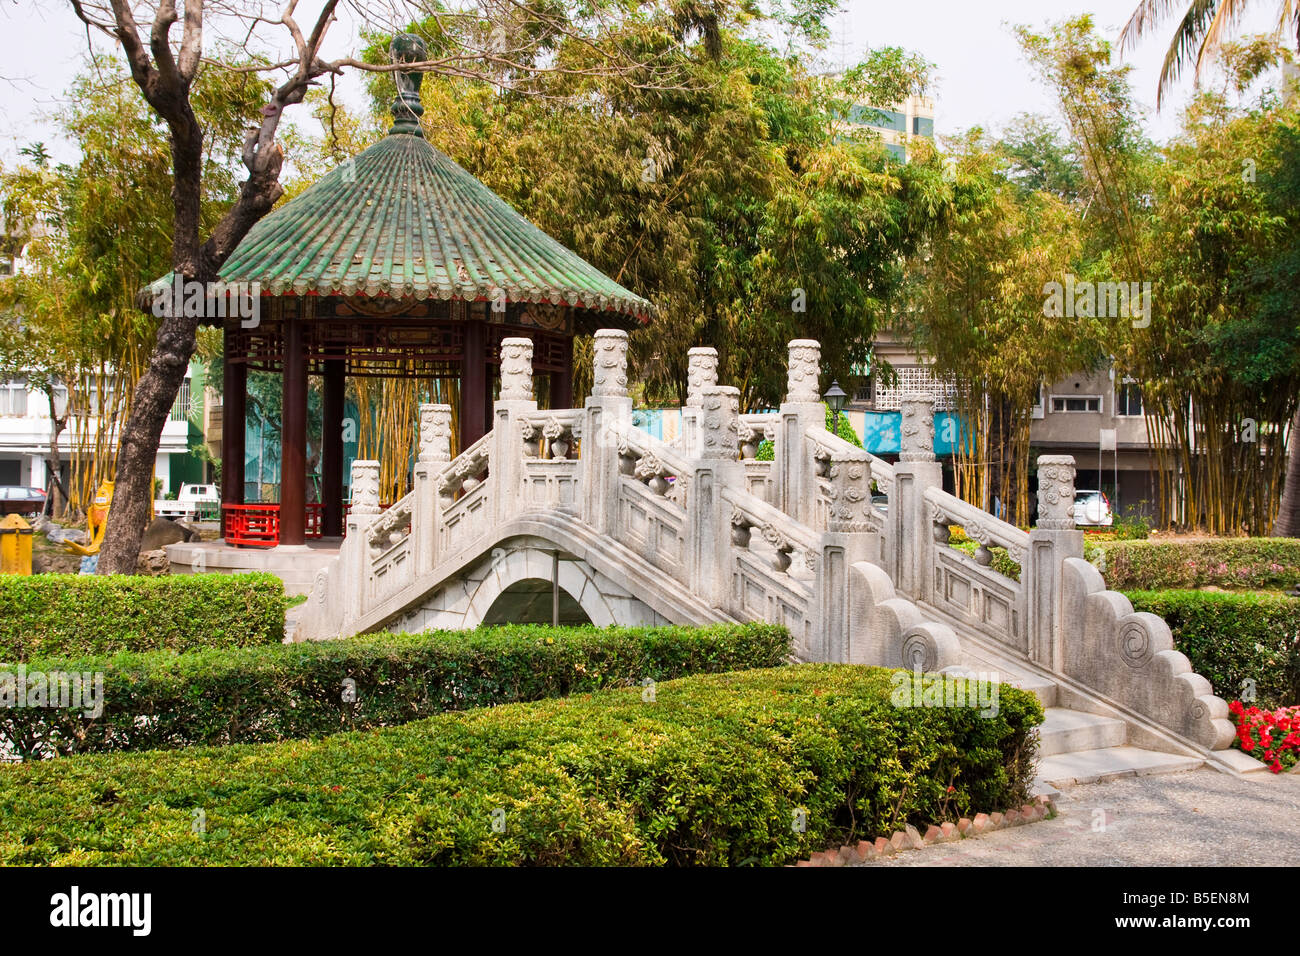 Park in the center of Tainan Taiwan with oriental bridge and pagoda - Stock Image